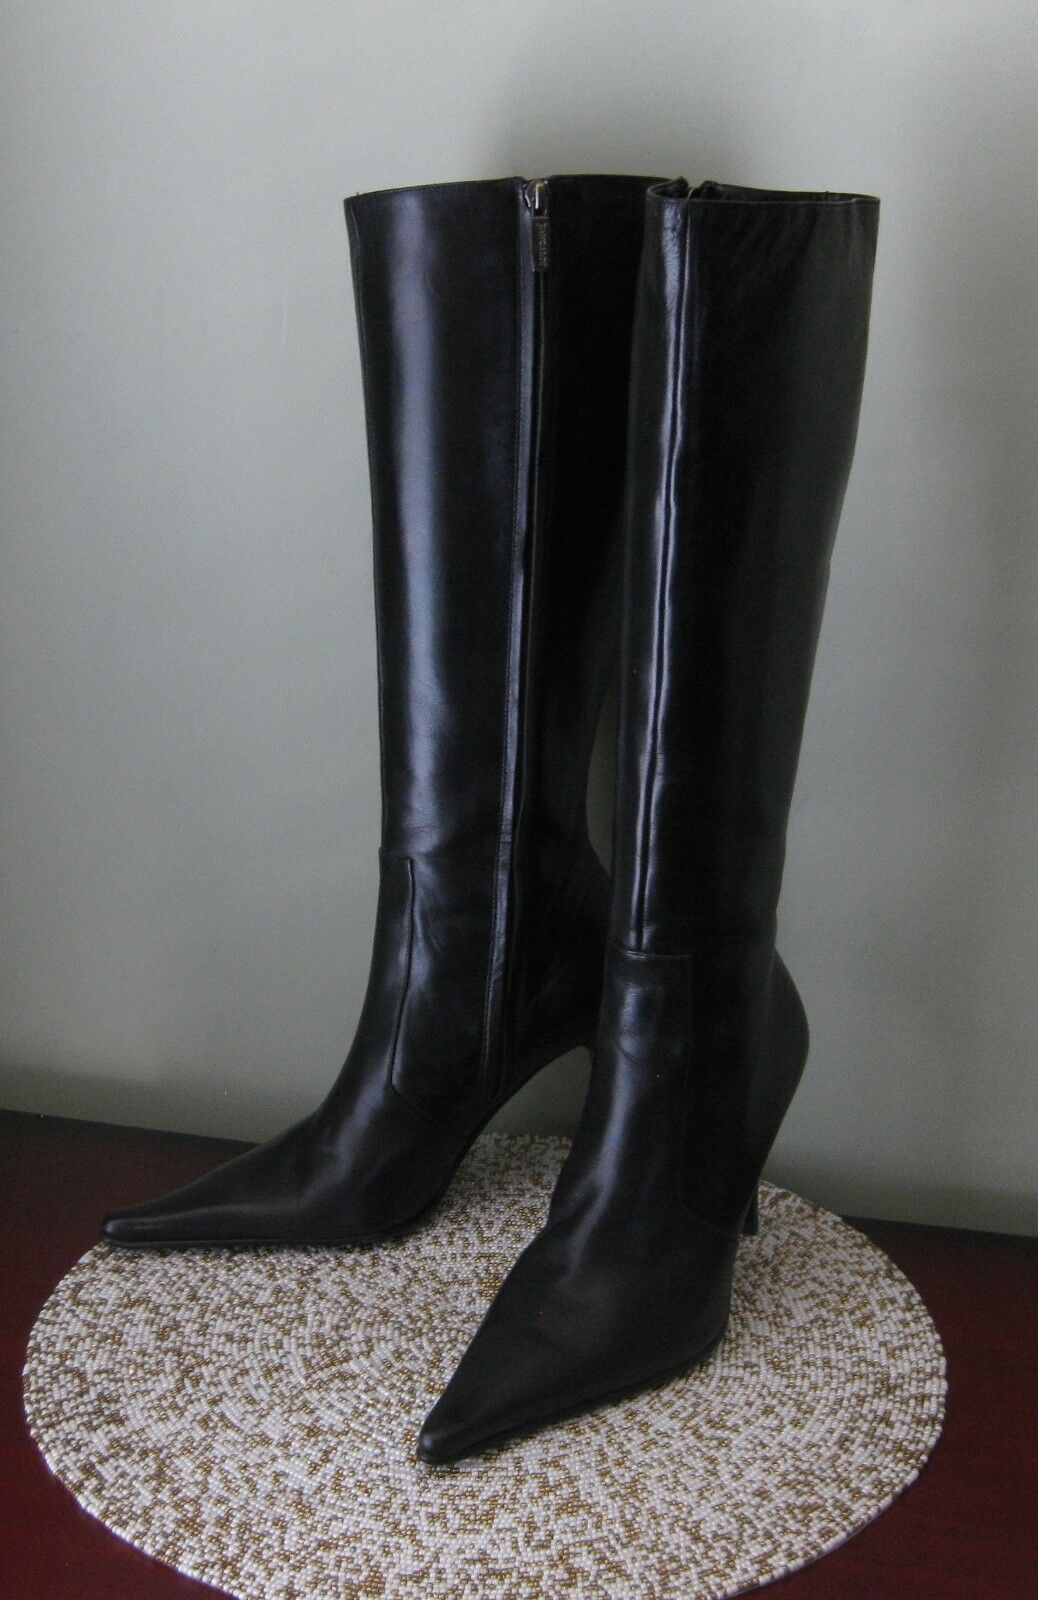 NEW PANCALDI Black Boots Heels shoes 38 Made in ITALY